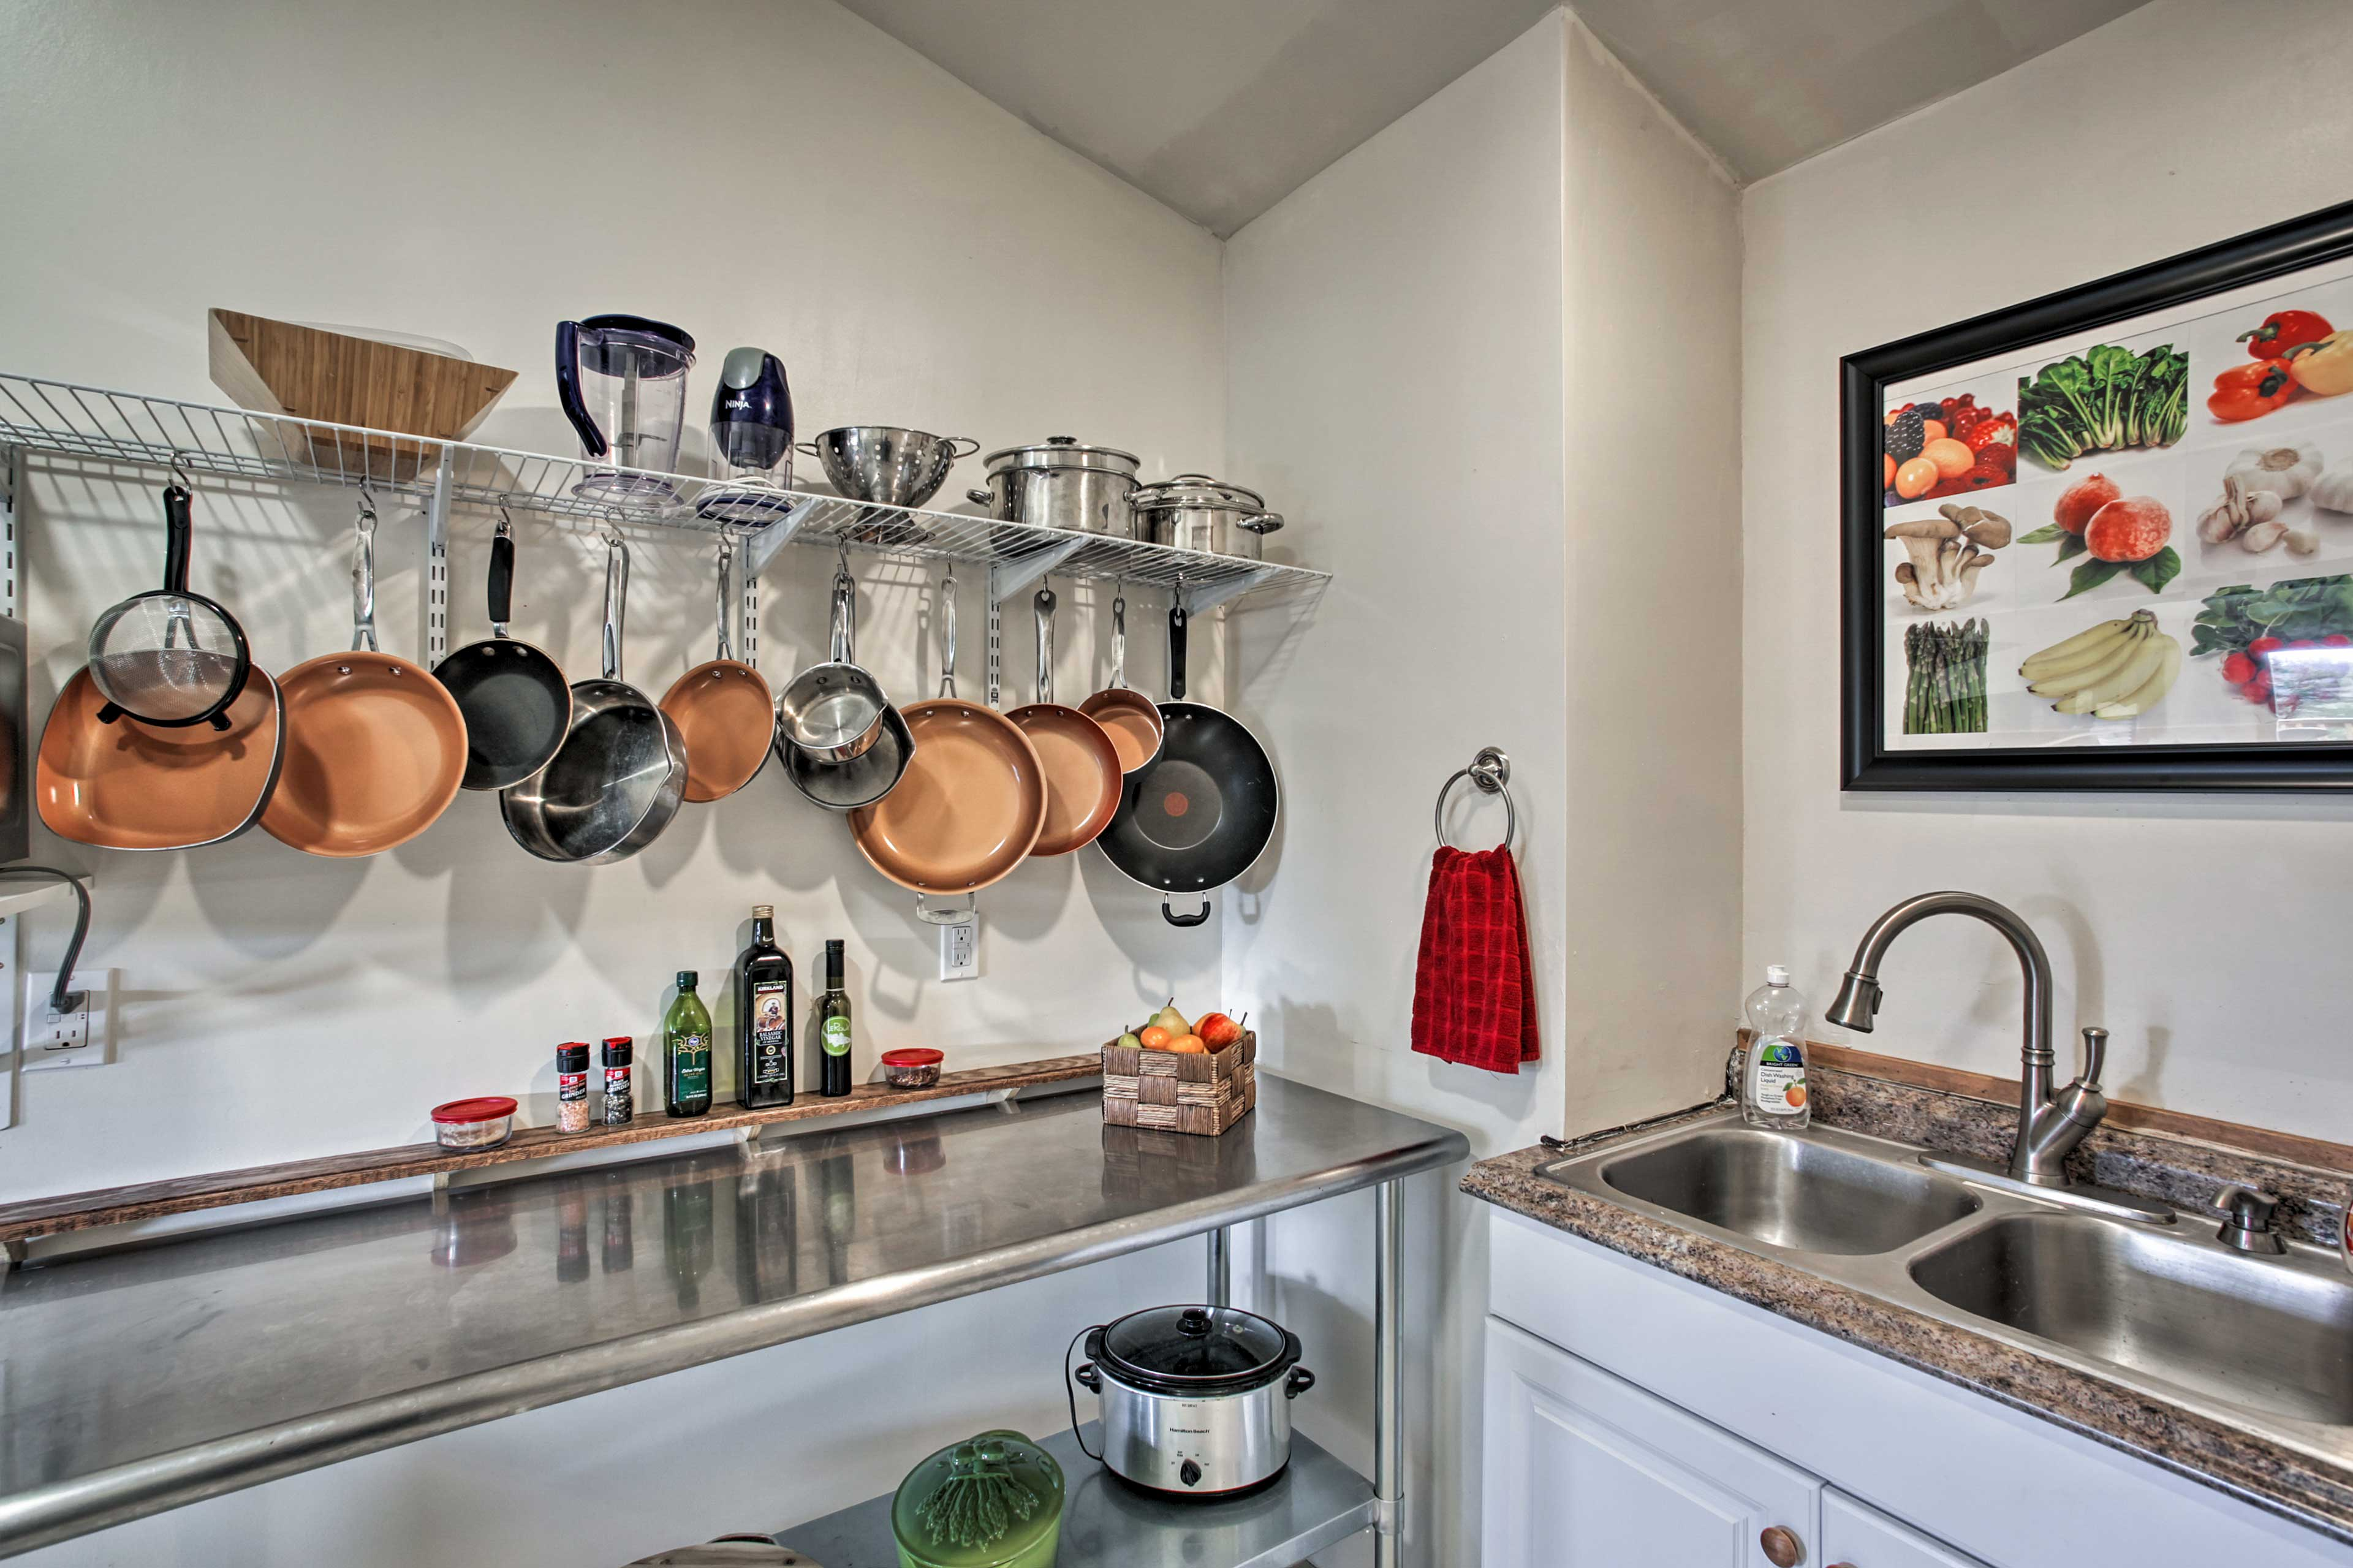 There's an abundance of pots and pans for you to use!